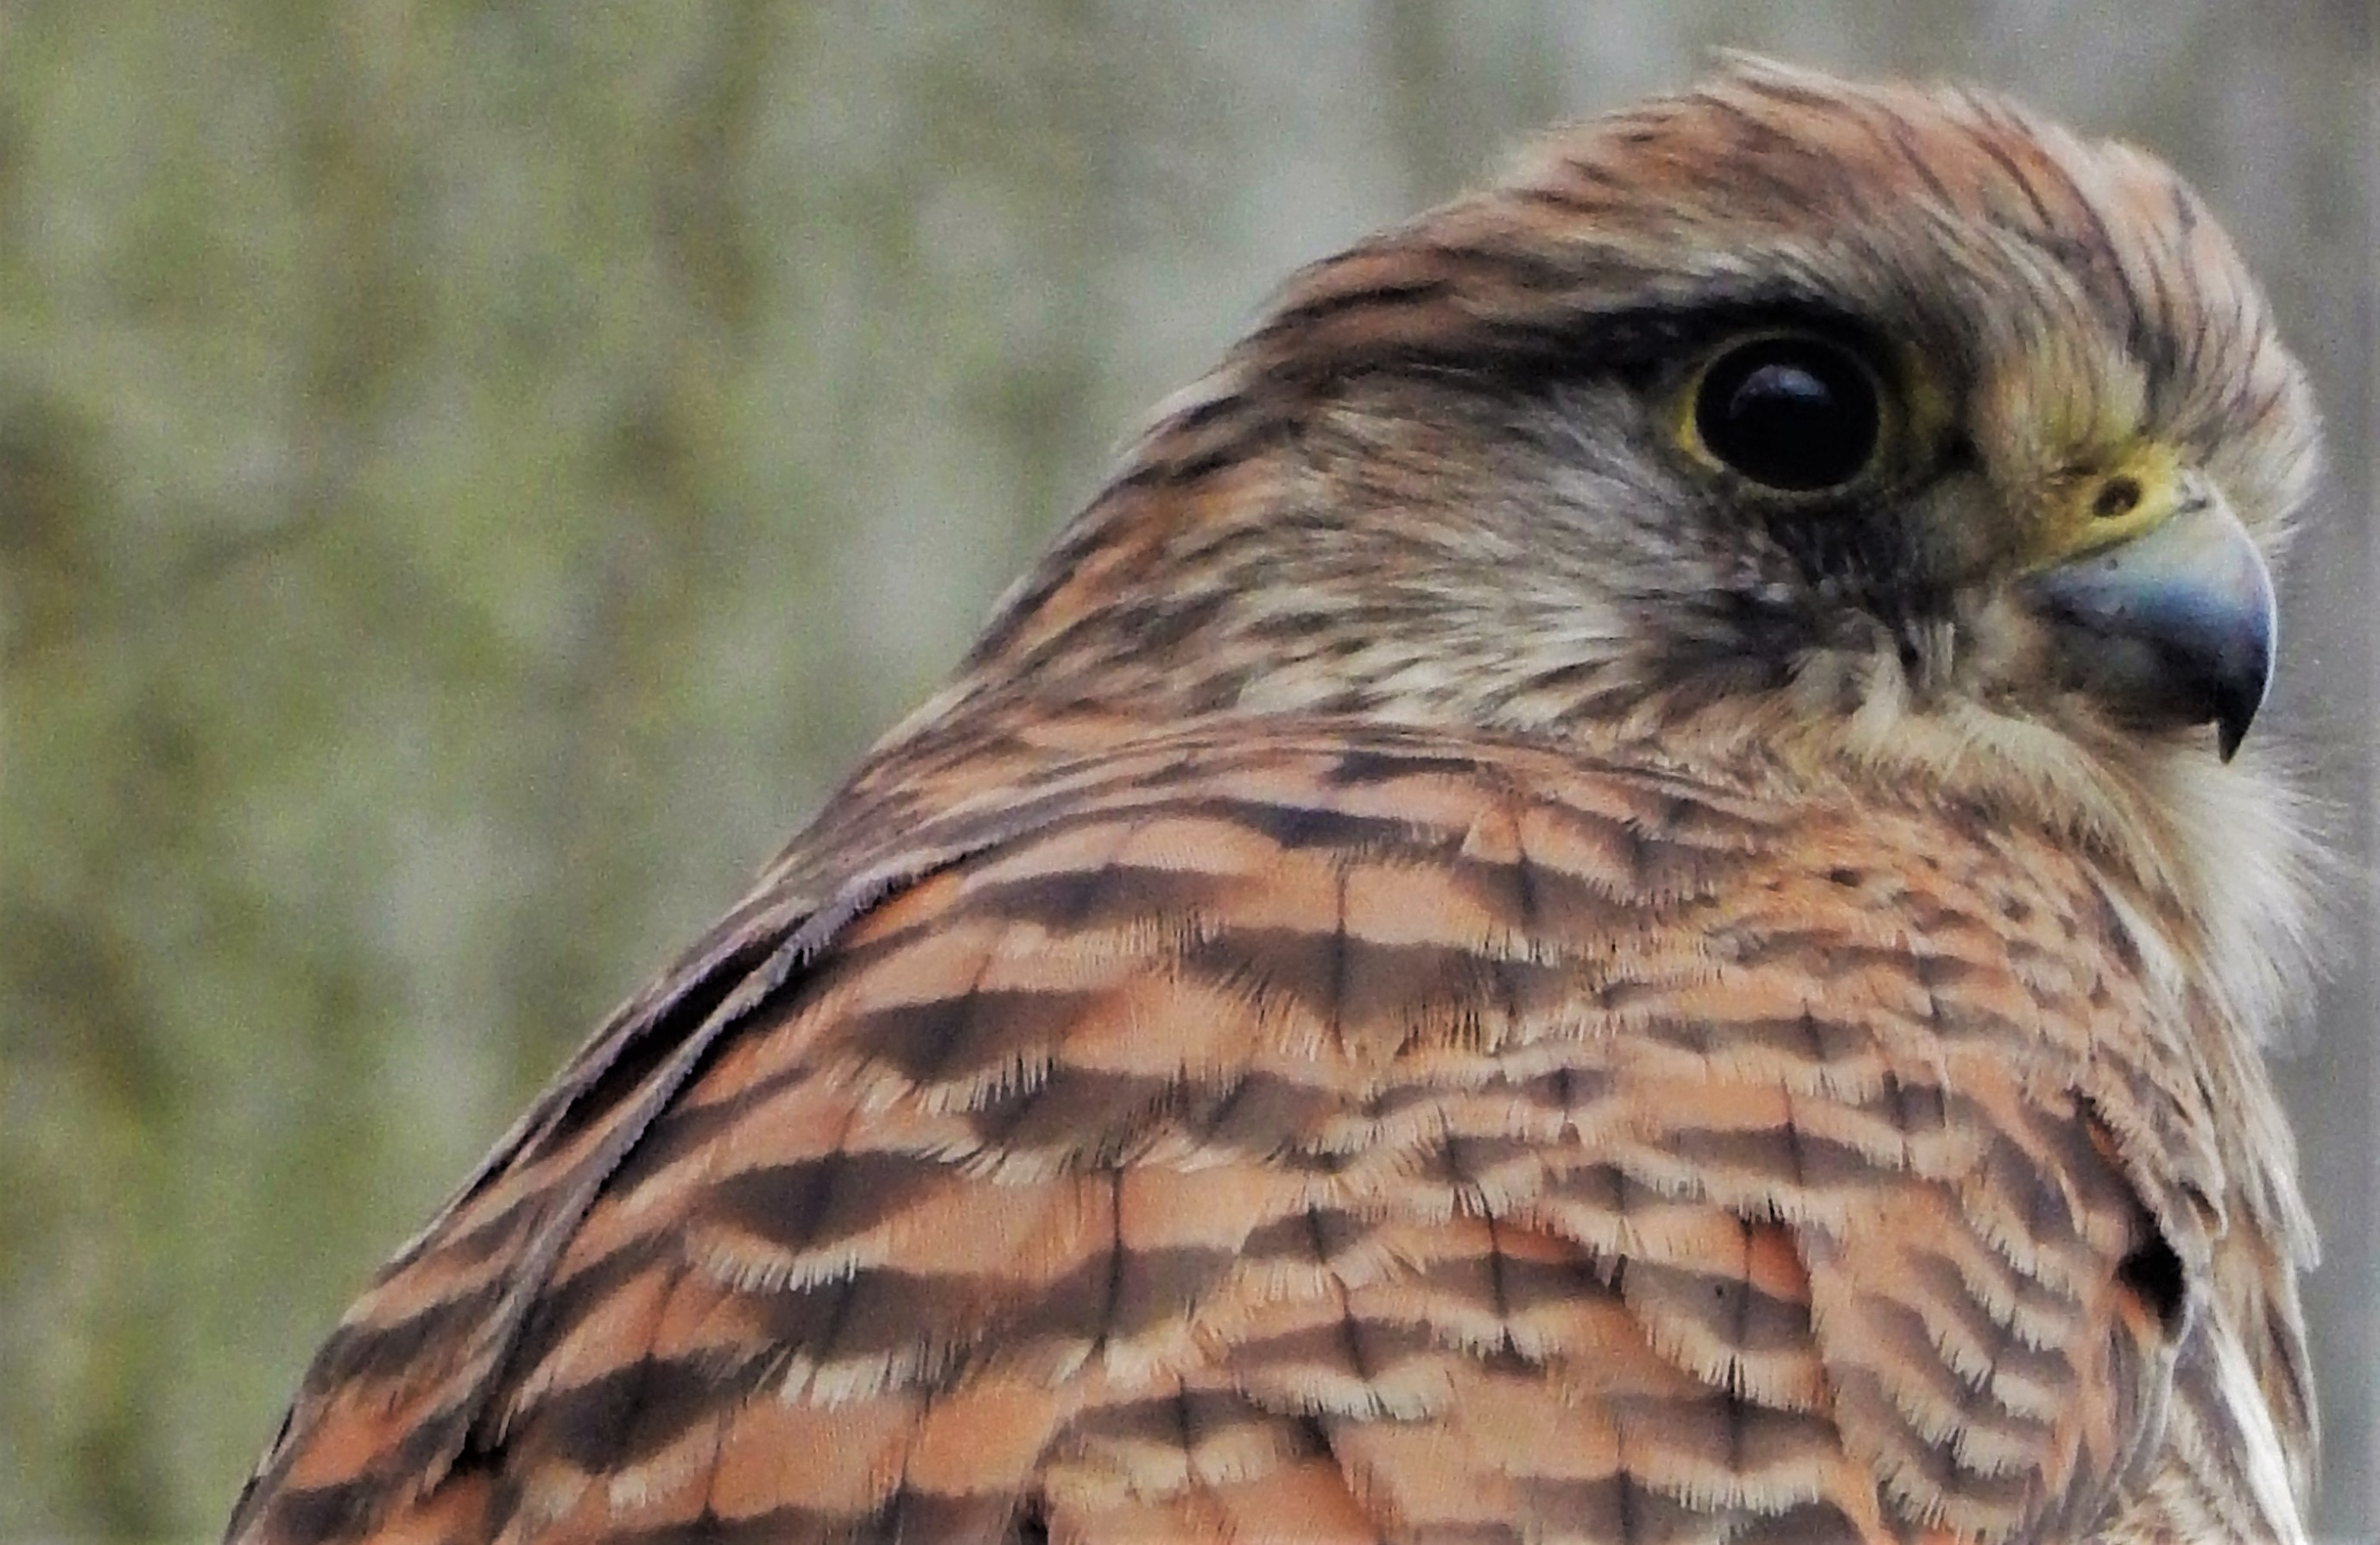 Head and back of a kestrel with striped feathers and hooked beak